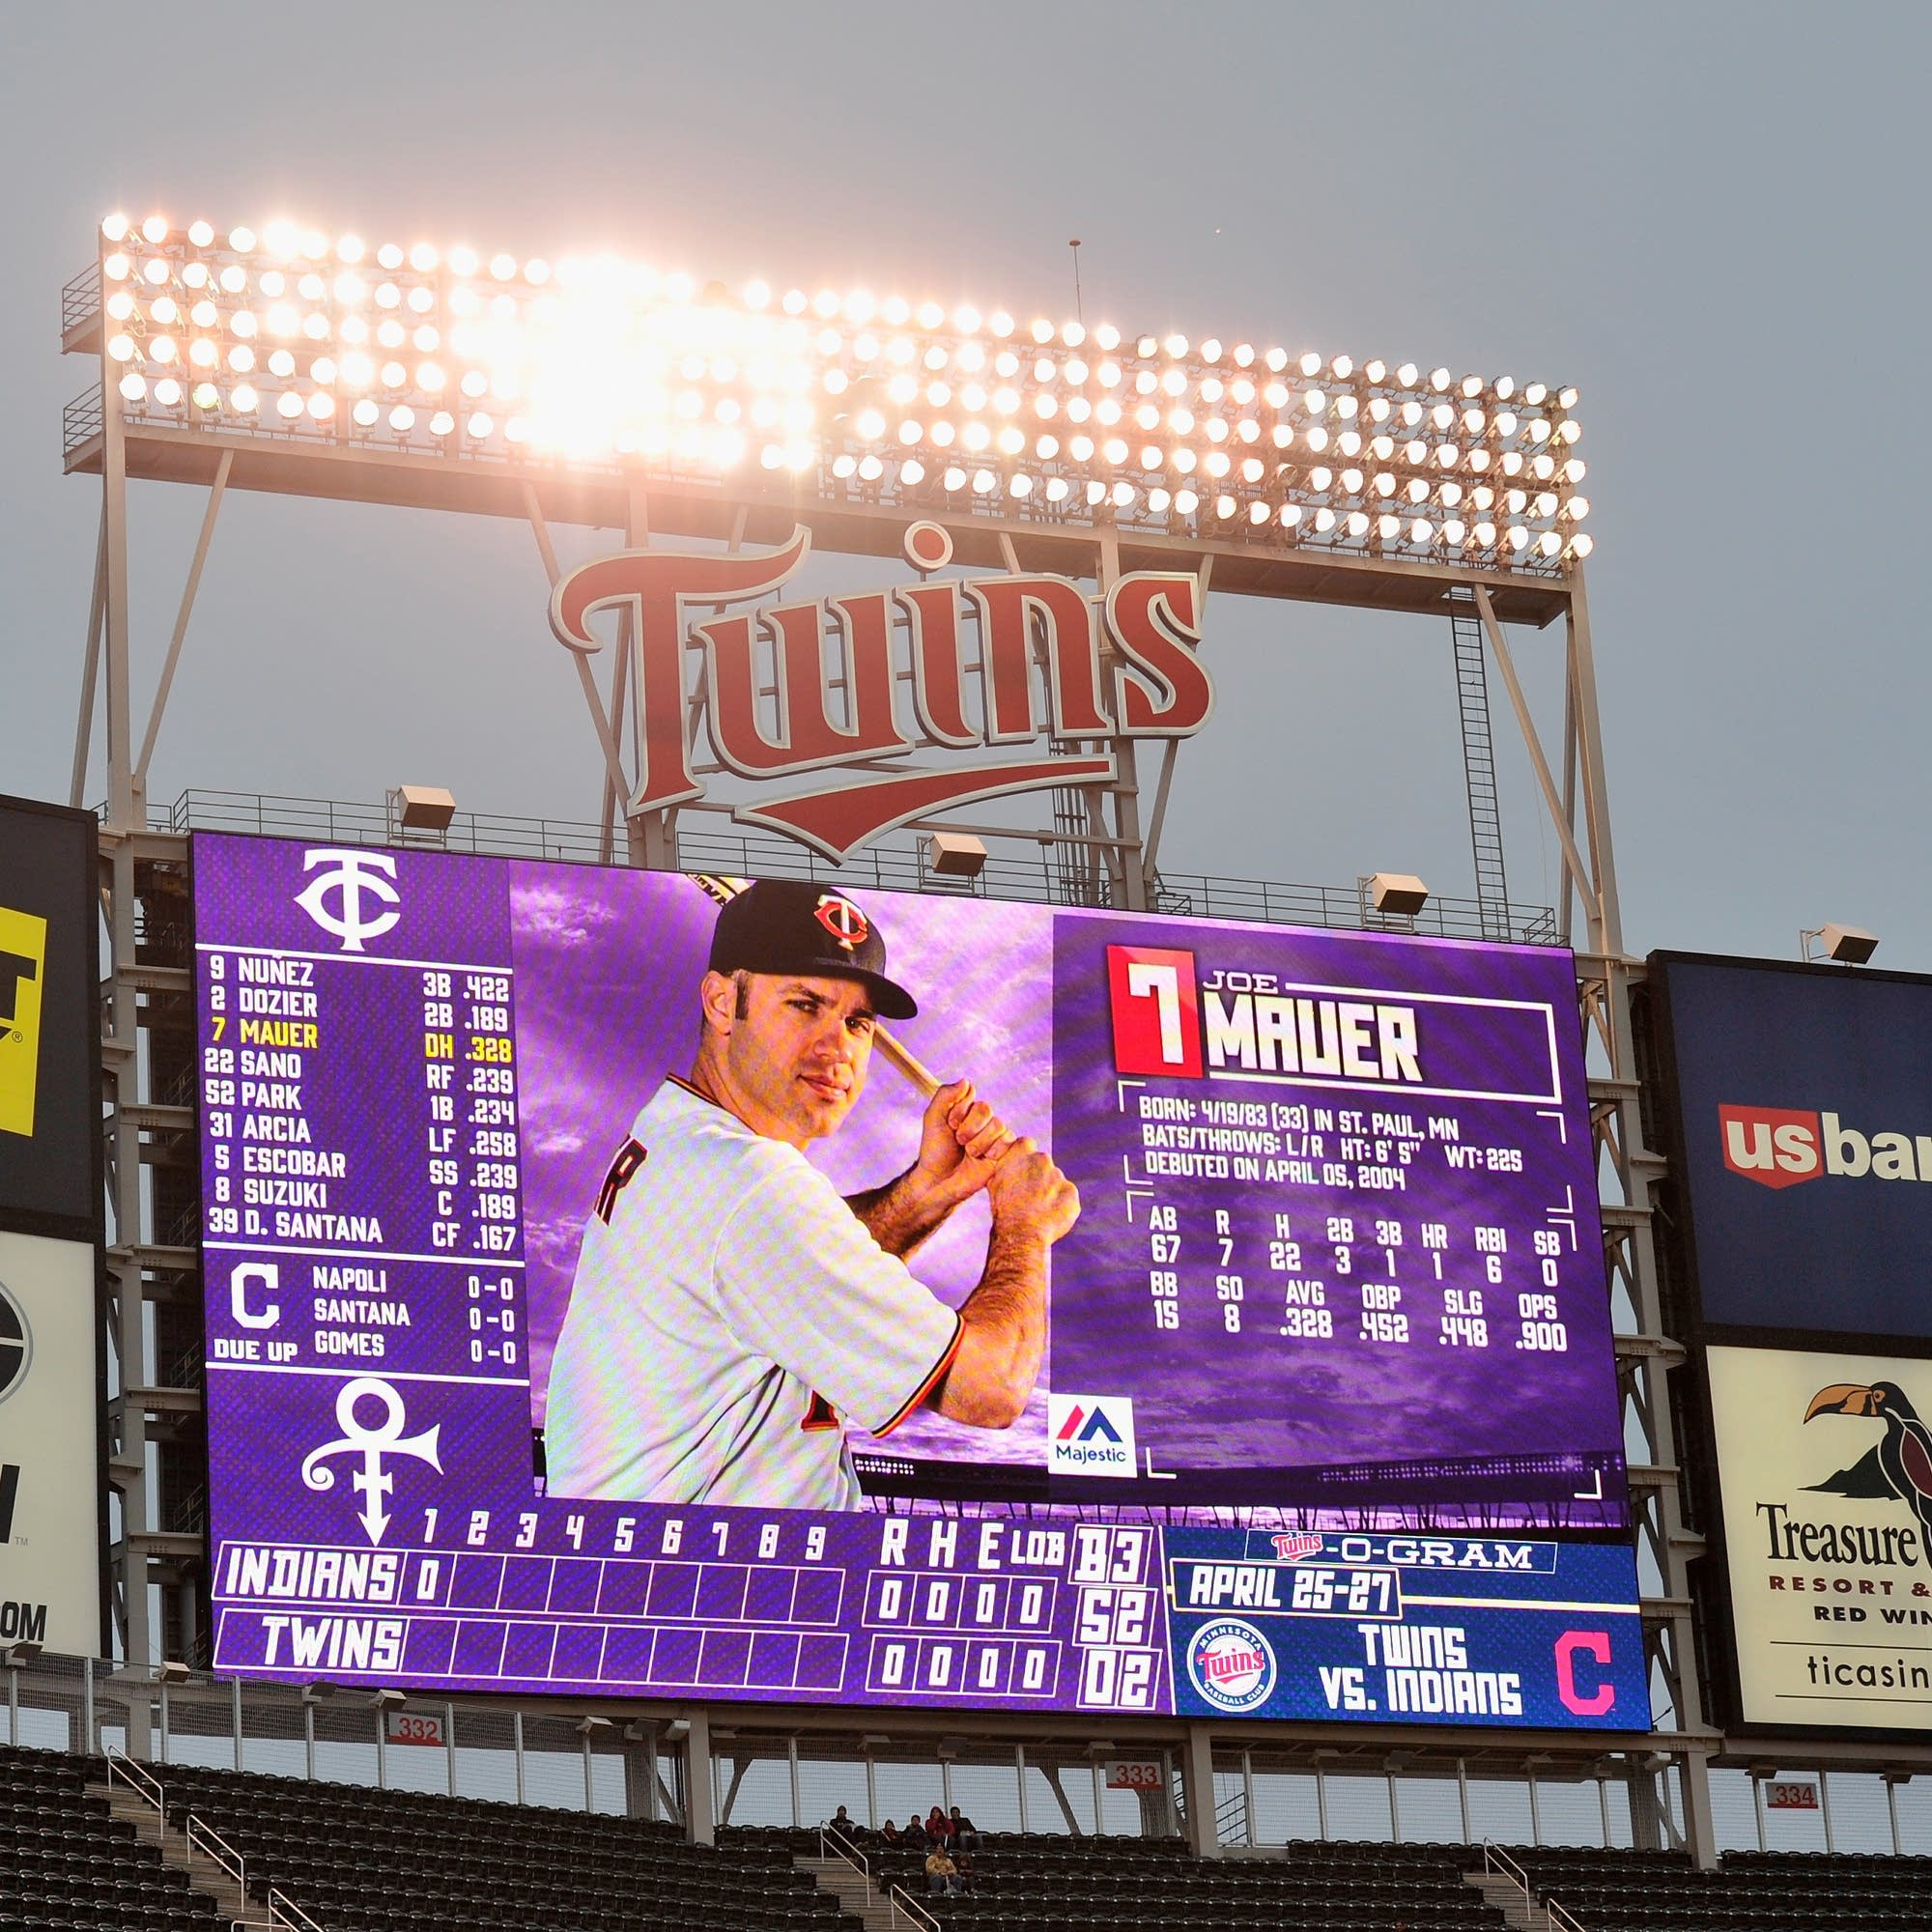 The scoreboard during Prince Night at Target Field, April 2017.